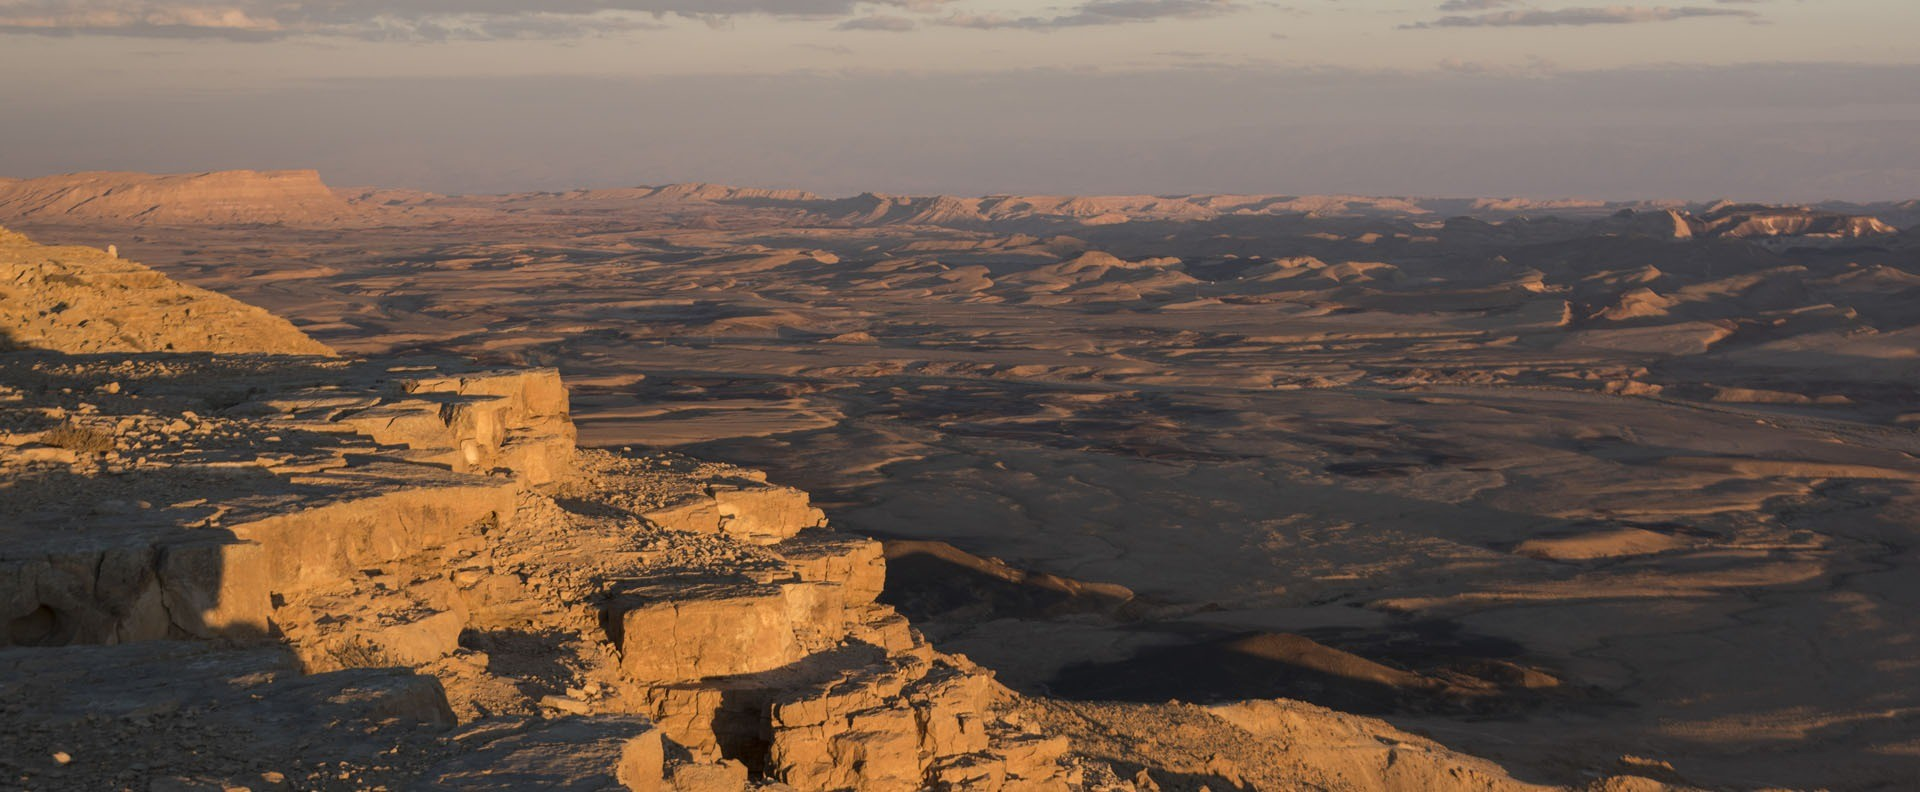 Negev Tour | Tour in the Negev | Holy Land VIP Tours